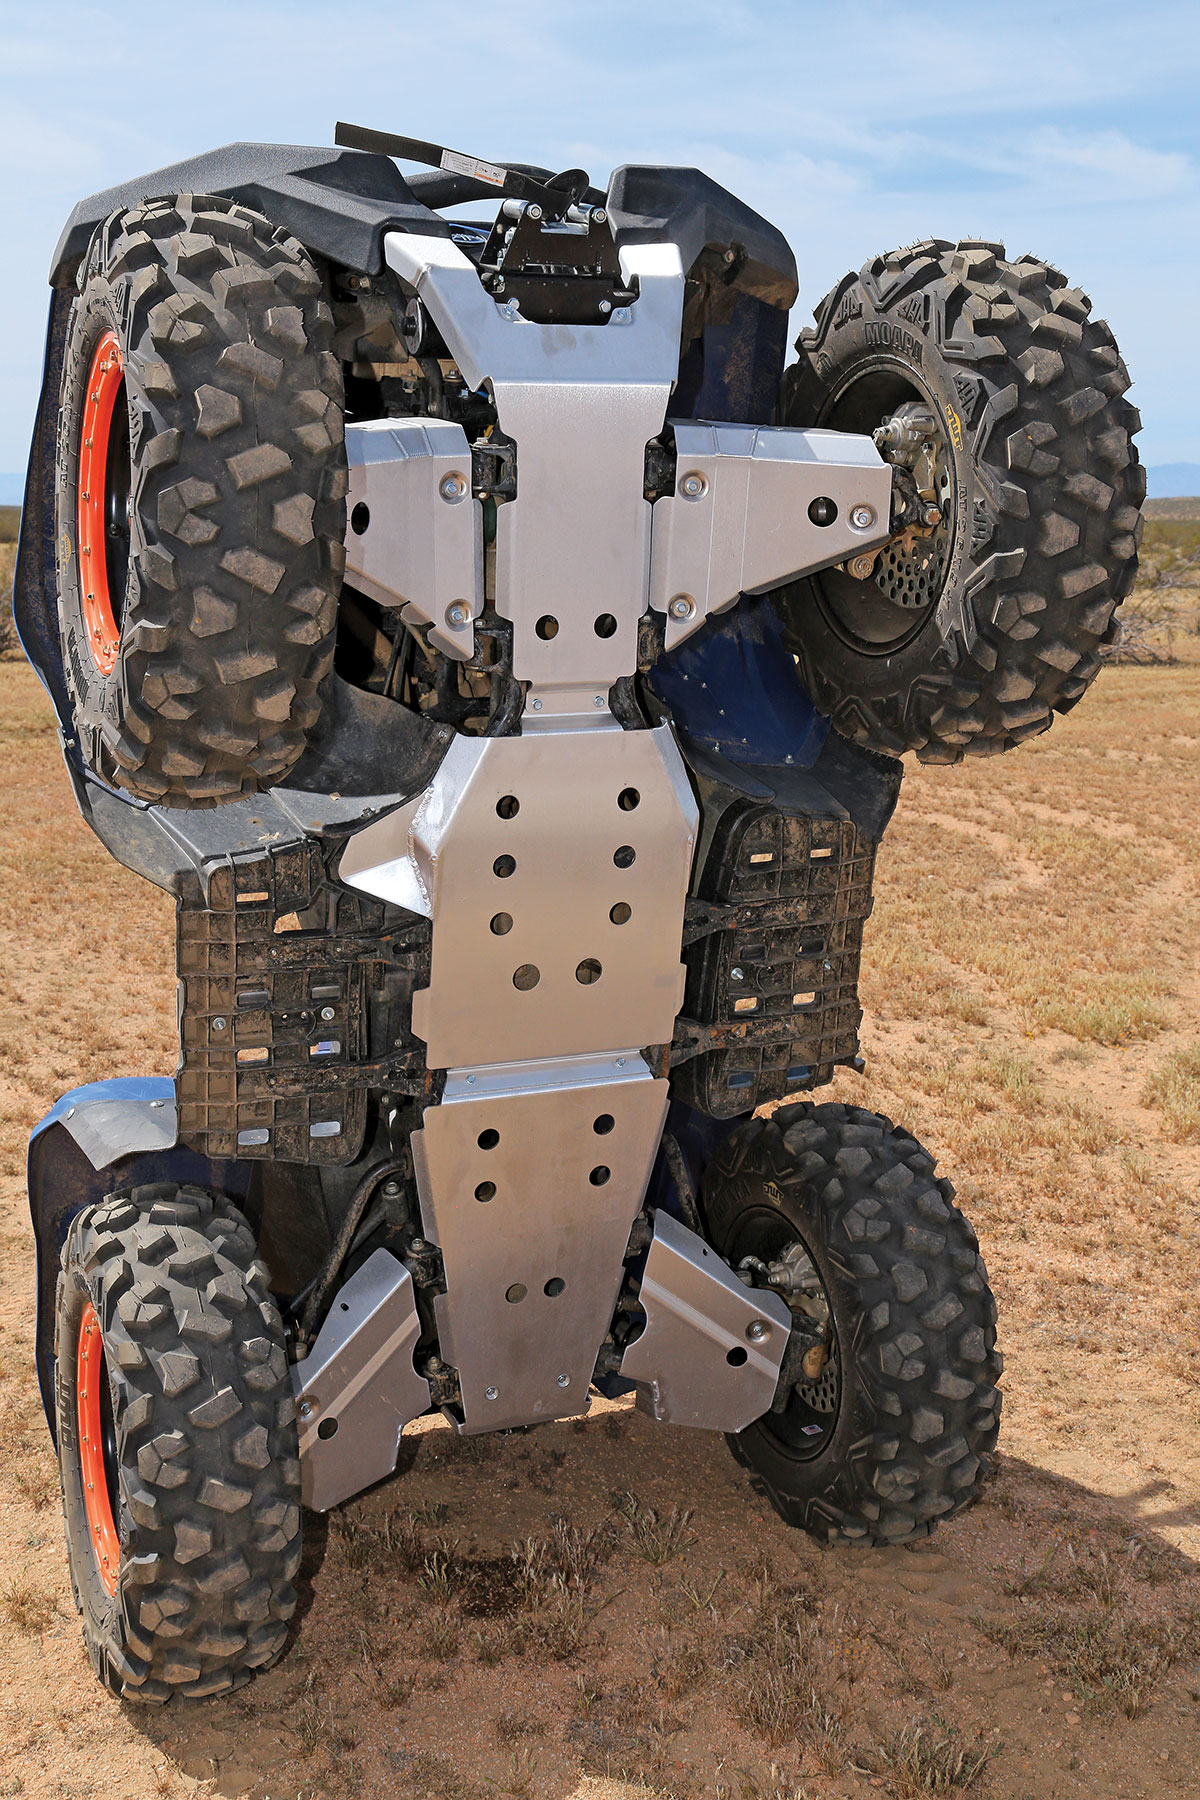 Yamaha offers skid plates for the Grizzly 700 that include a front bash plate, belly skids, as well as front and rear A-arm skids.